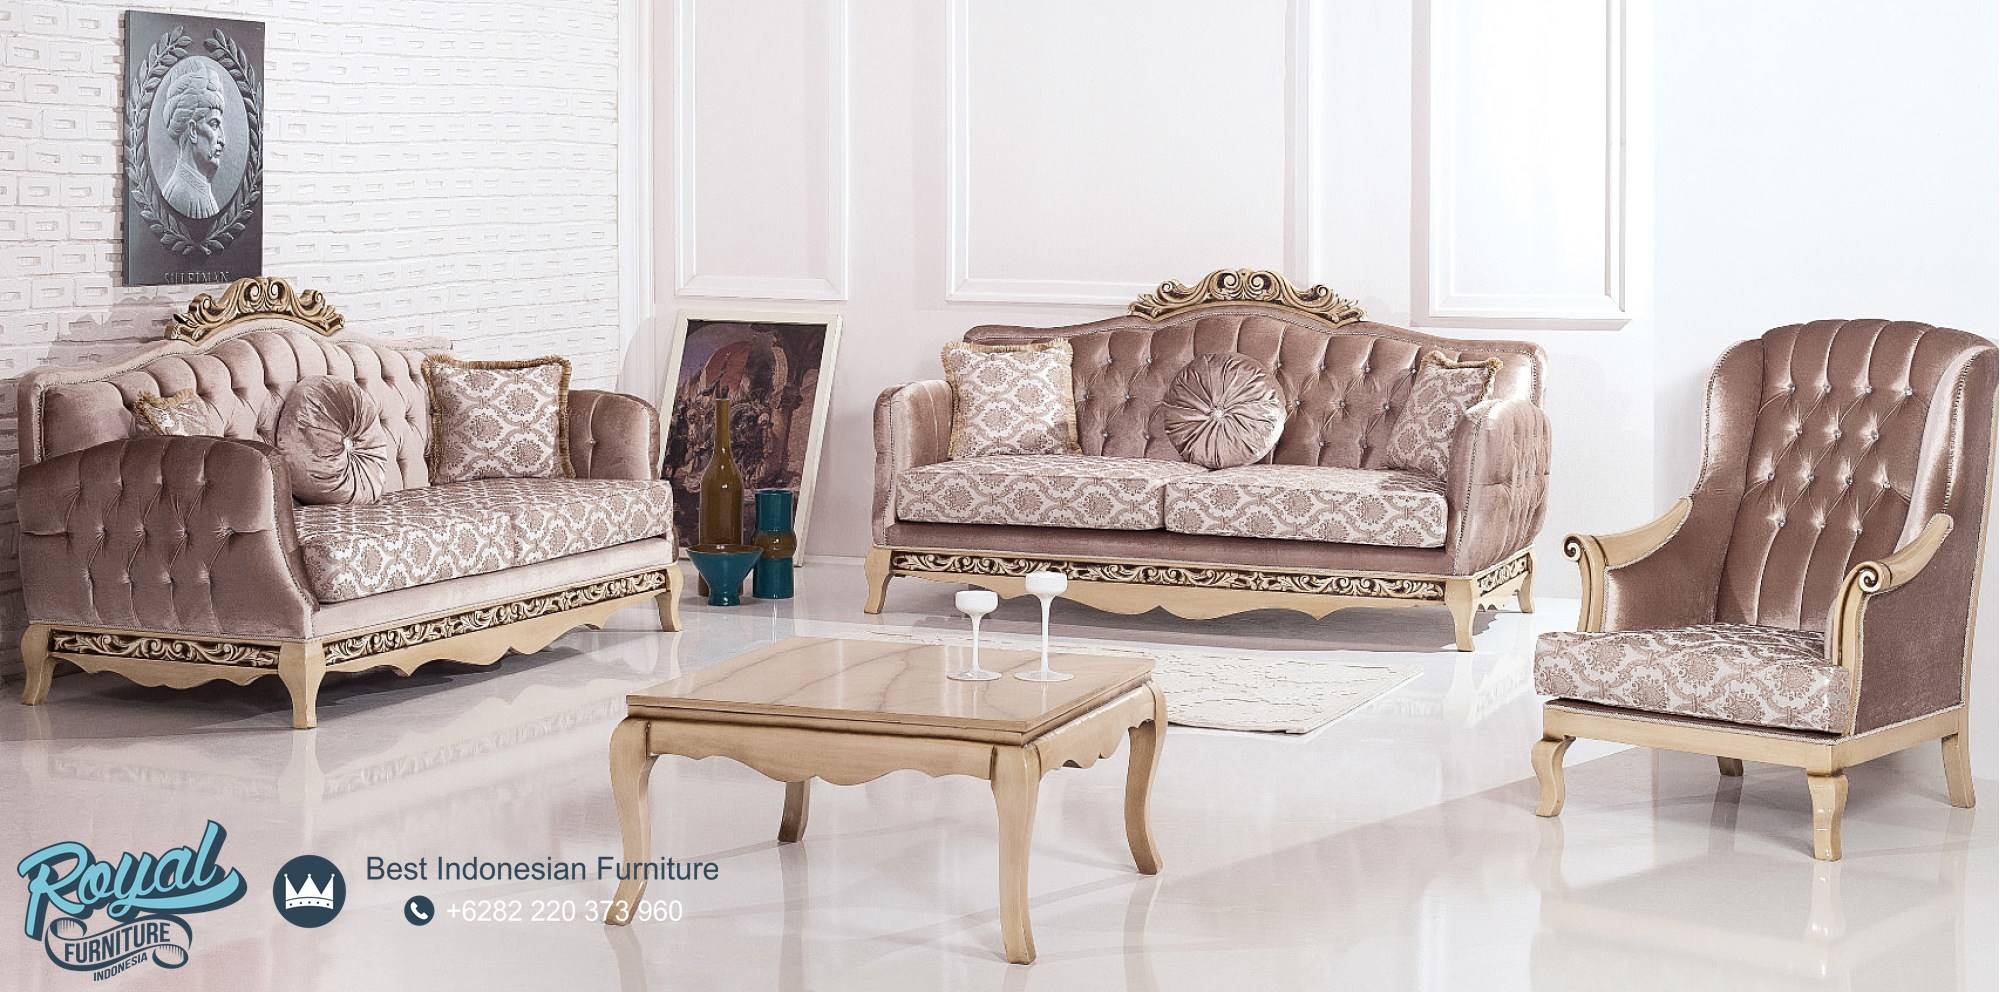 Set Kursi Tamu Sofa Mewah Konsanyu Model Mewah Terbaru, Set Sofa Tamu Terbaru, Set Sofa Tamu Mewah, Set Sofa tamu klasik, Furniture Sofa Tamu Minimalis, Furniture Sofa Tamu, Gambar Sofa Tamu, Harga Sofa Tamu Mewah, Kursi Sofa Tamu Mewah, Kursi Sofa Tamu Minimalis, Set Sofa Tamu Mewah, Sofa Kursi Tamu Jepara, Sofa Tamu Jati, Sofa Tamu Jati Jepara, Sofa Tamu Jati Minimalis, Sofa Tamu Jepara, Sofa Tamu Minimalis, Sofa Tamu Minimalis Mewah, Sofa Tamu Minimalis Modern, Sofa Tamu Minimalis Murah, Sofa Tamu Minimalis Terbaru, Sofa Tamu Modern, Sofa Tamu Murah, Sofa Tamu Set Minimalis, Royal Furniture Jepara